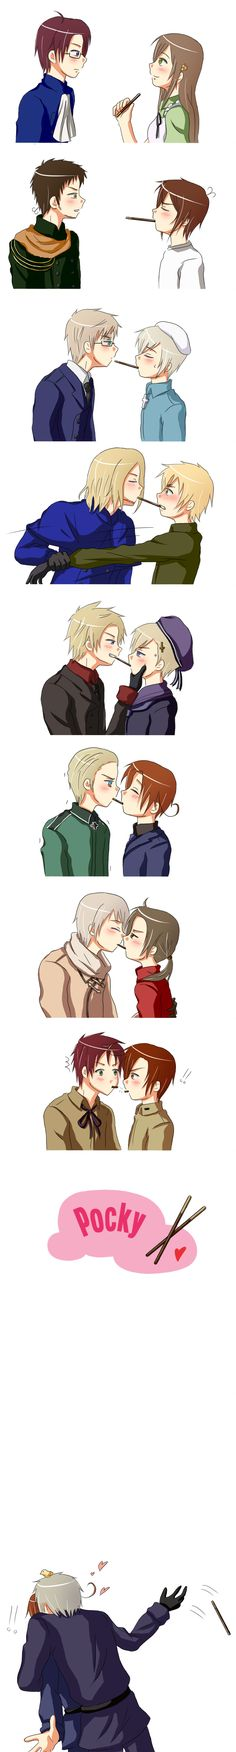 "I love Prussia at the end. He's just like: ""F**k the pocky c'mere."""